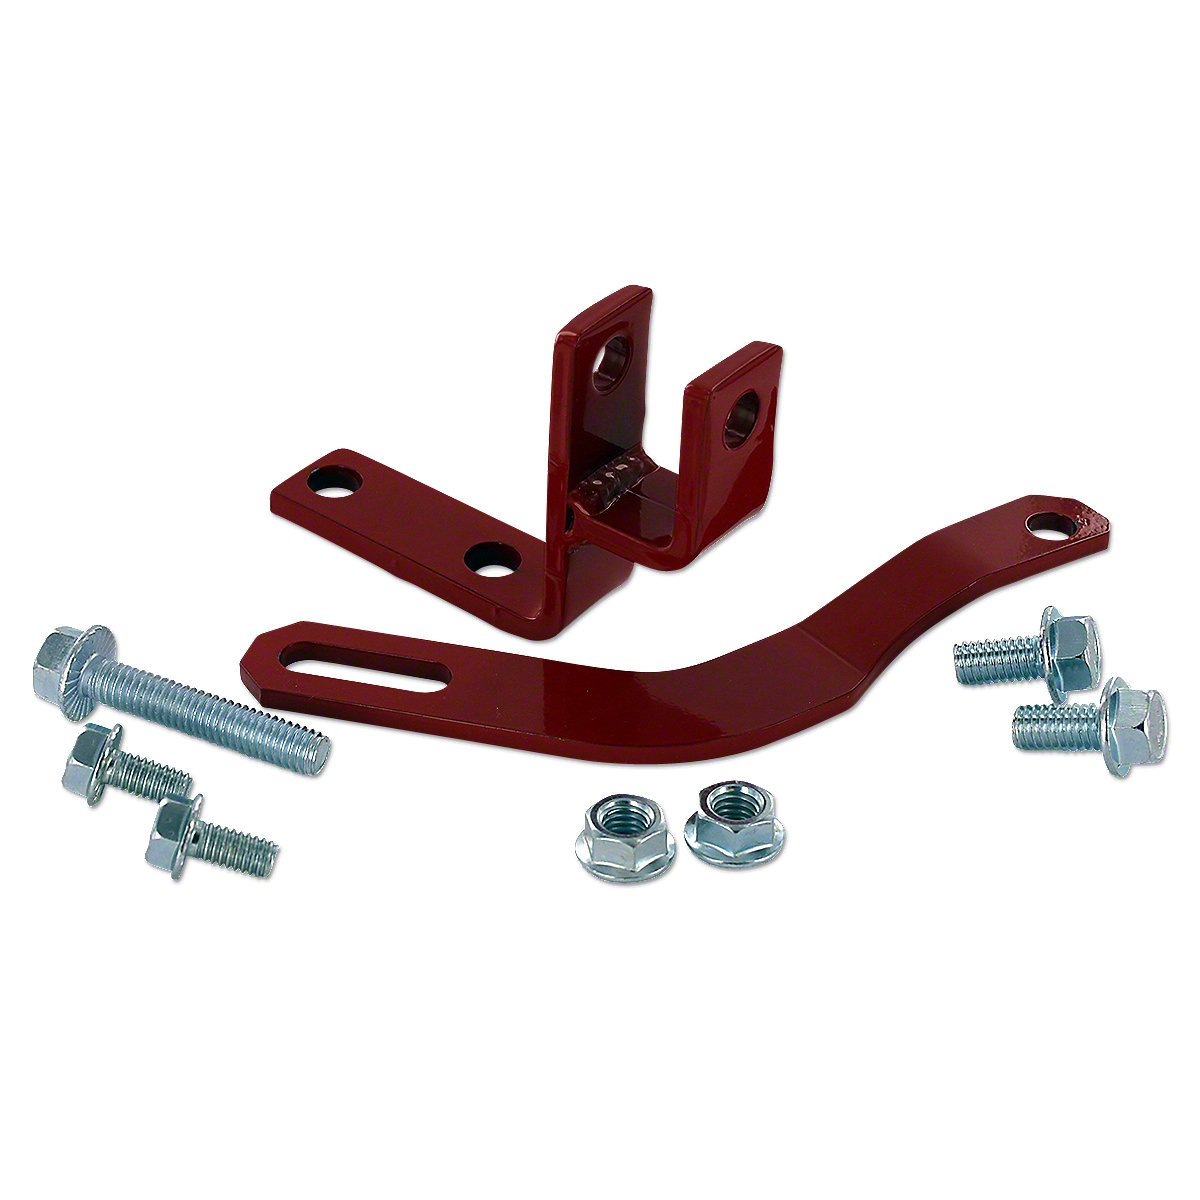 IHS2340 Cub Alternator Bracket Kit 2-piece